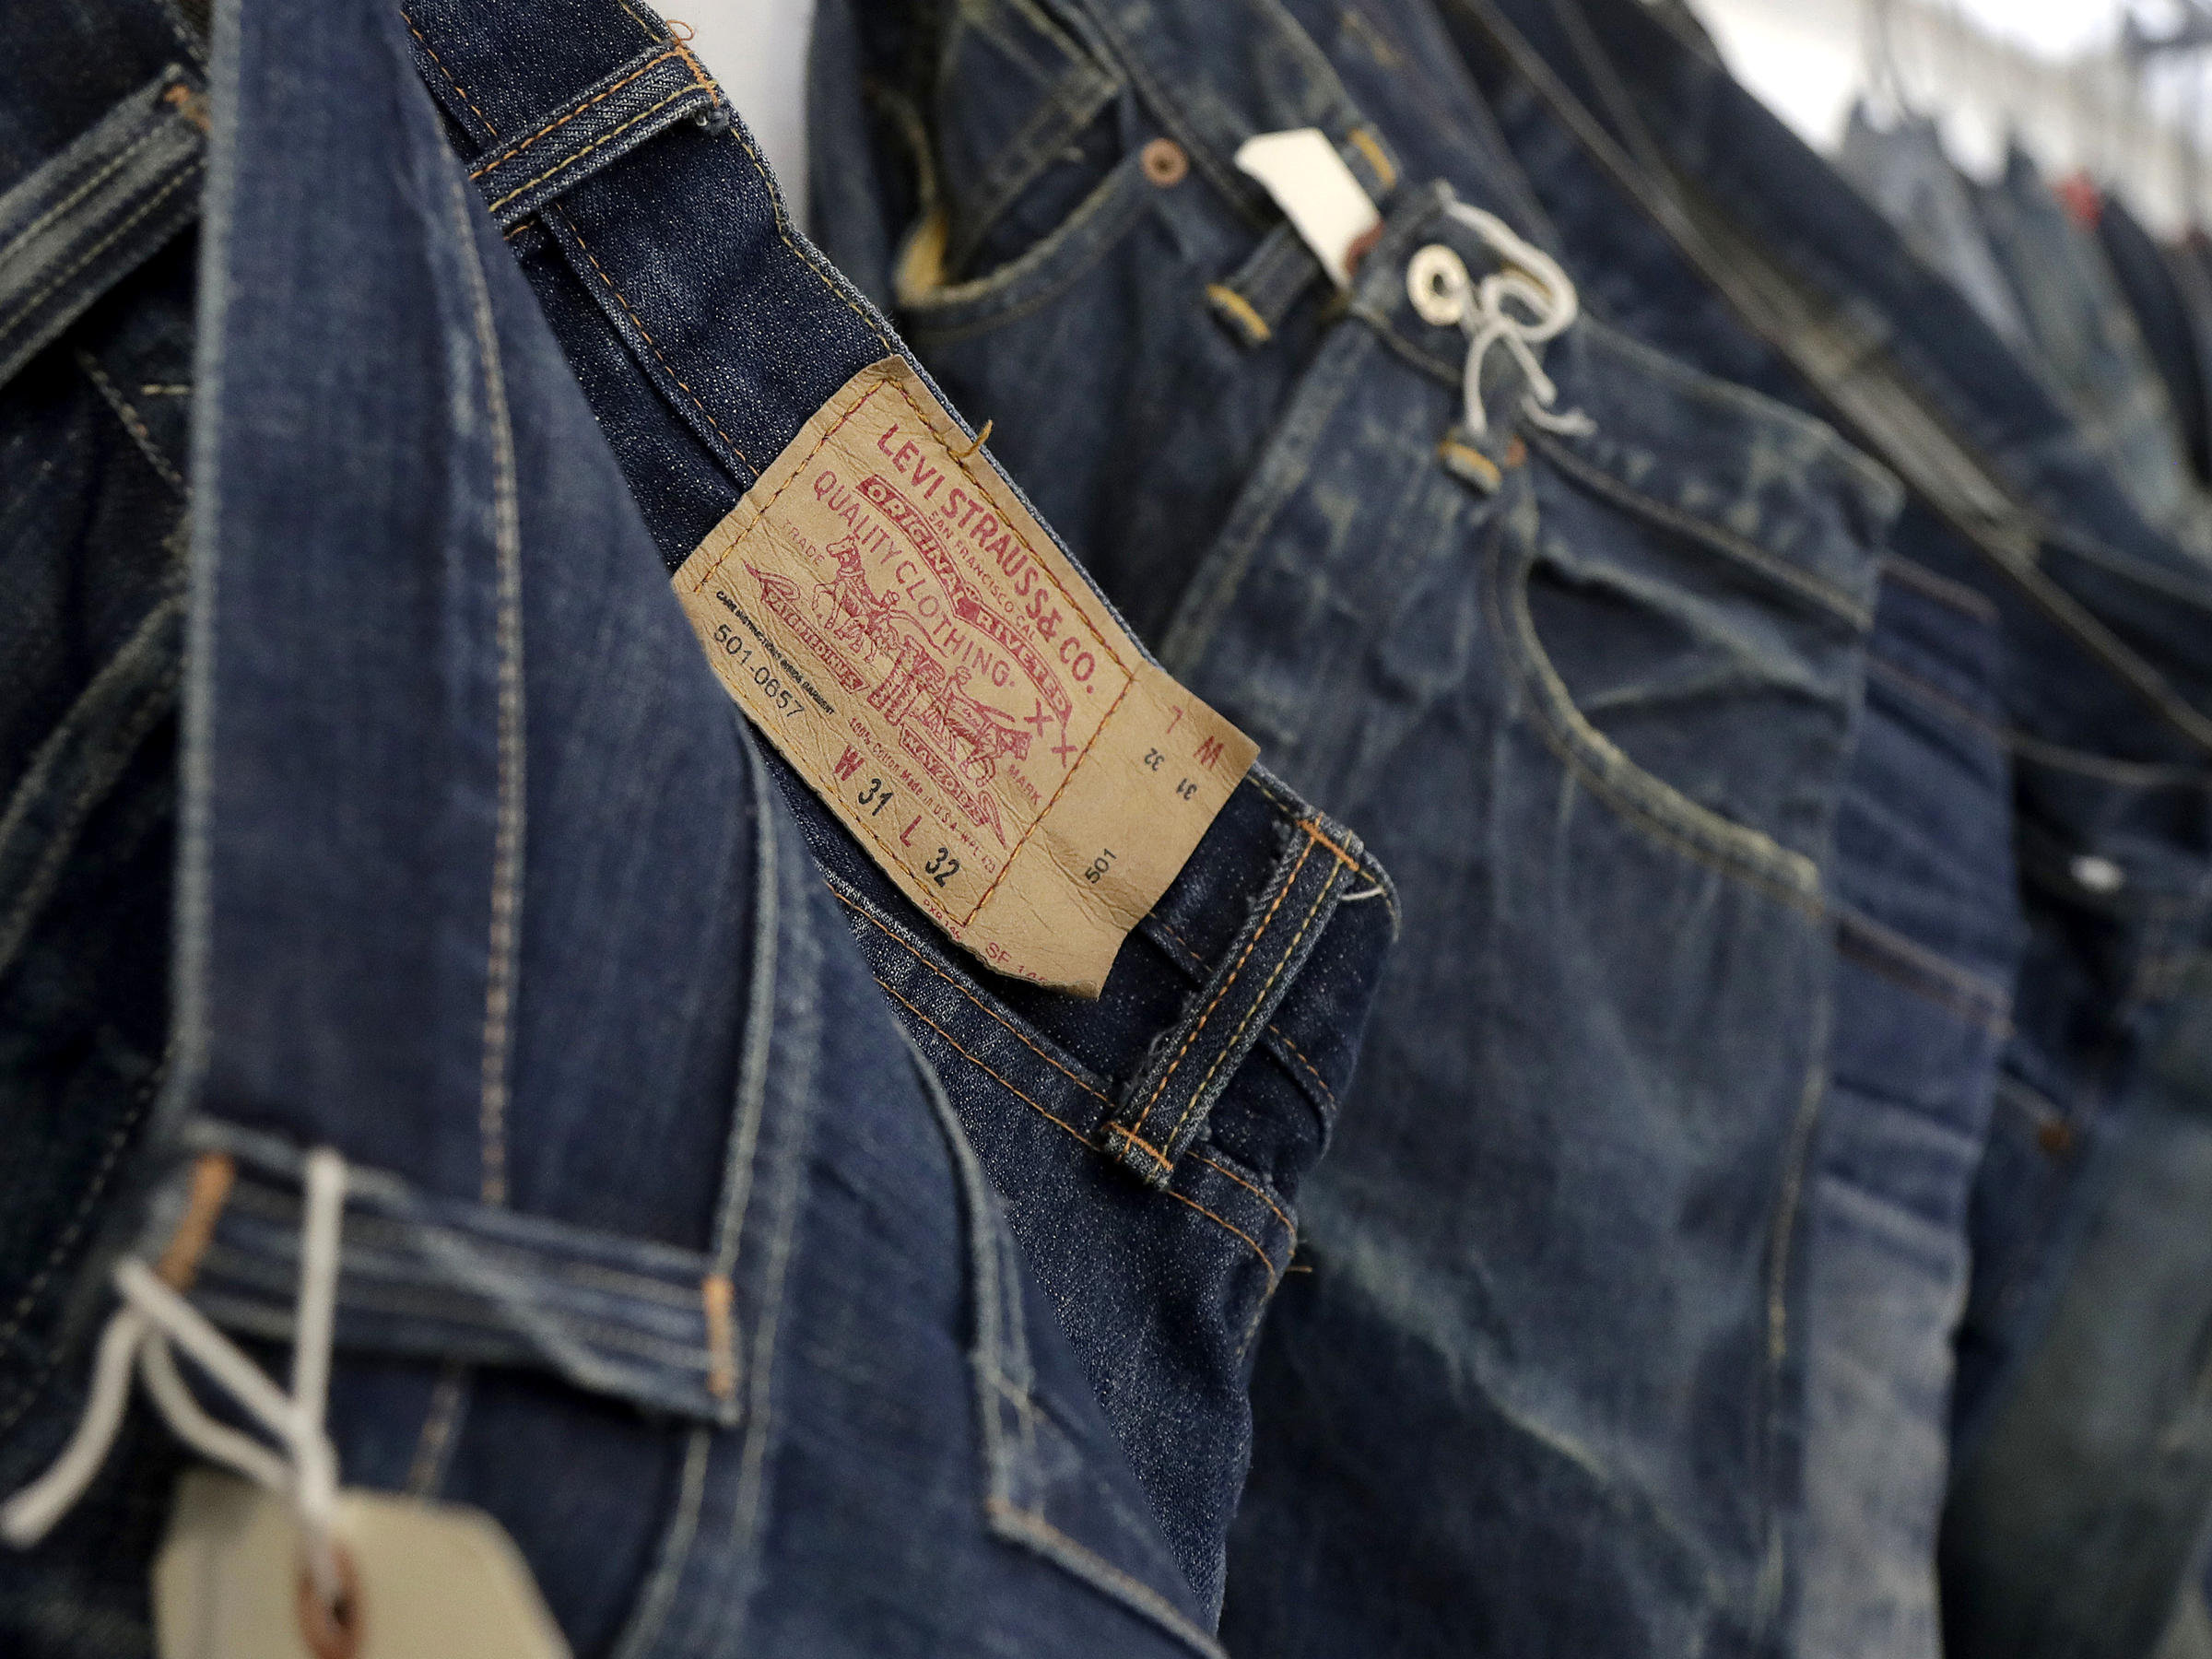 0e906d71138 Levi Strauss & Co. said on Wednesday that it has filed paperwork for an initial  public offering.